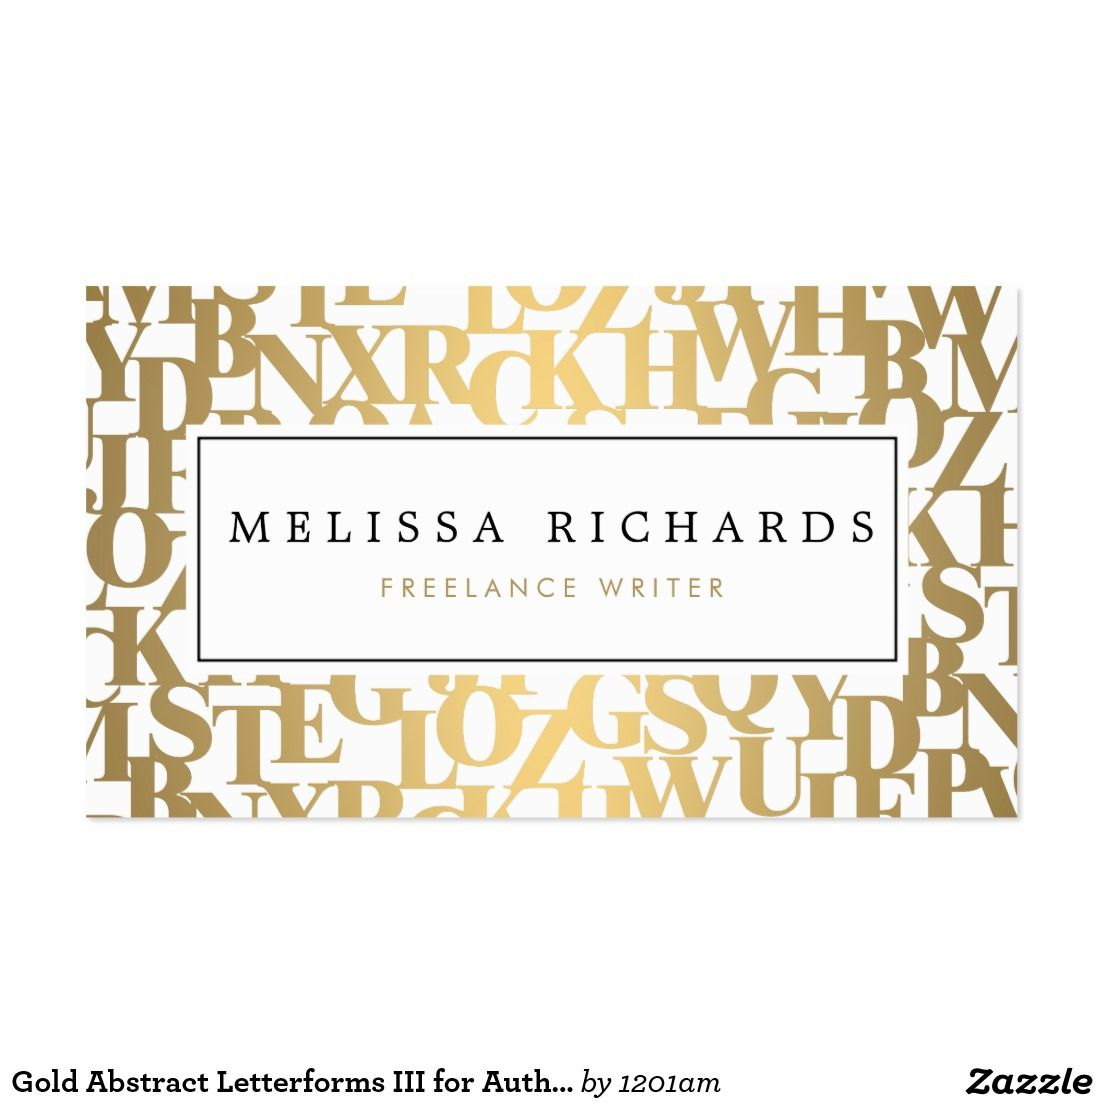 Gold abstract letterforms iii for authors writers business card gold abstract letterforms business card for authors writers double sided design ready magicingreecefo Choice Image